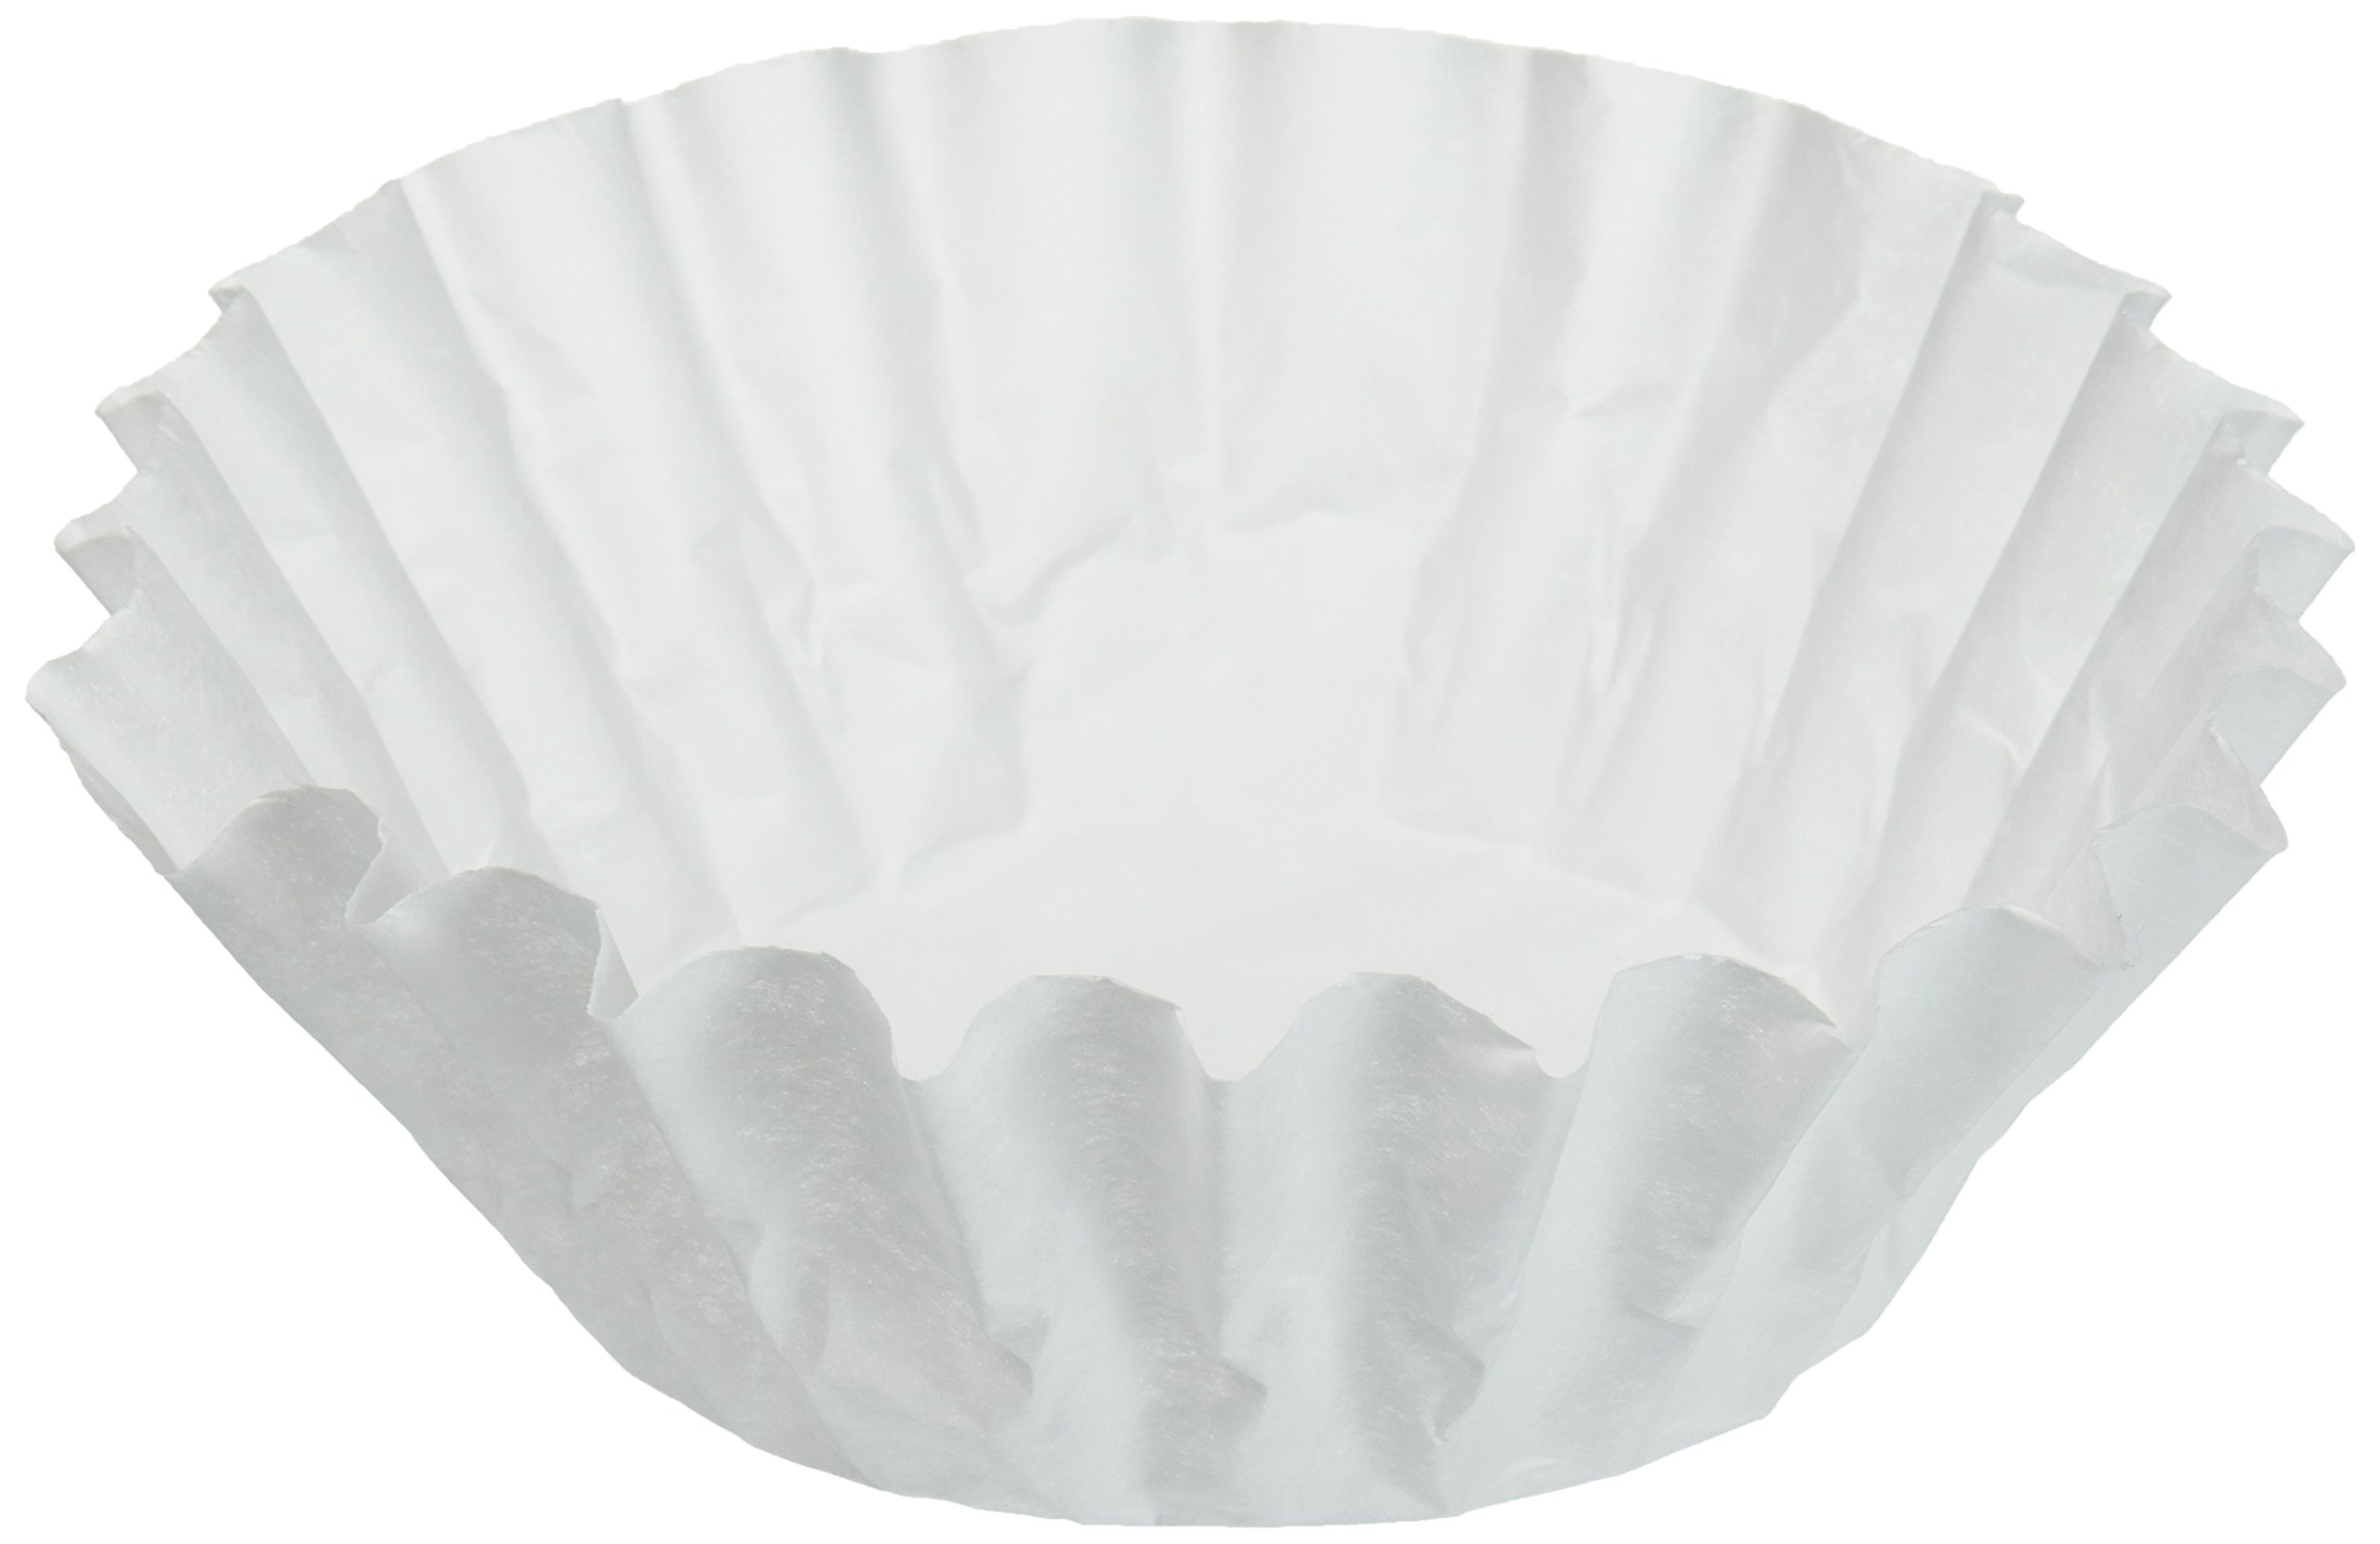 Bunn 500 Paper Regular Coffee Filter for 12-Cup Commercial Brewers (Case of 500)